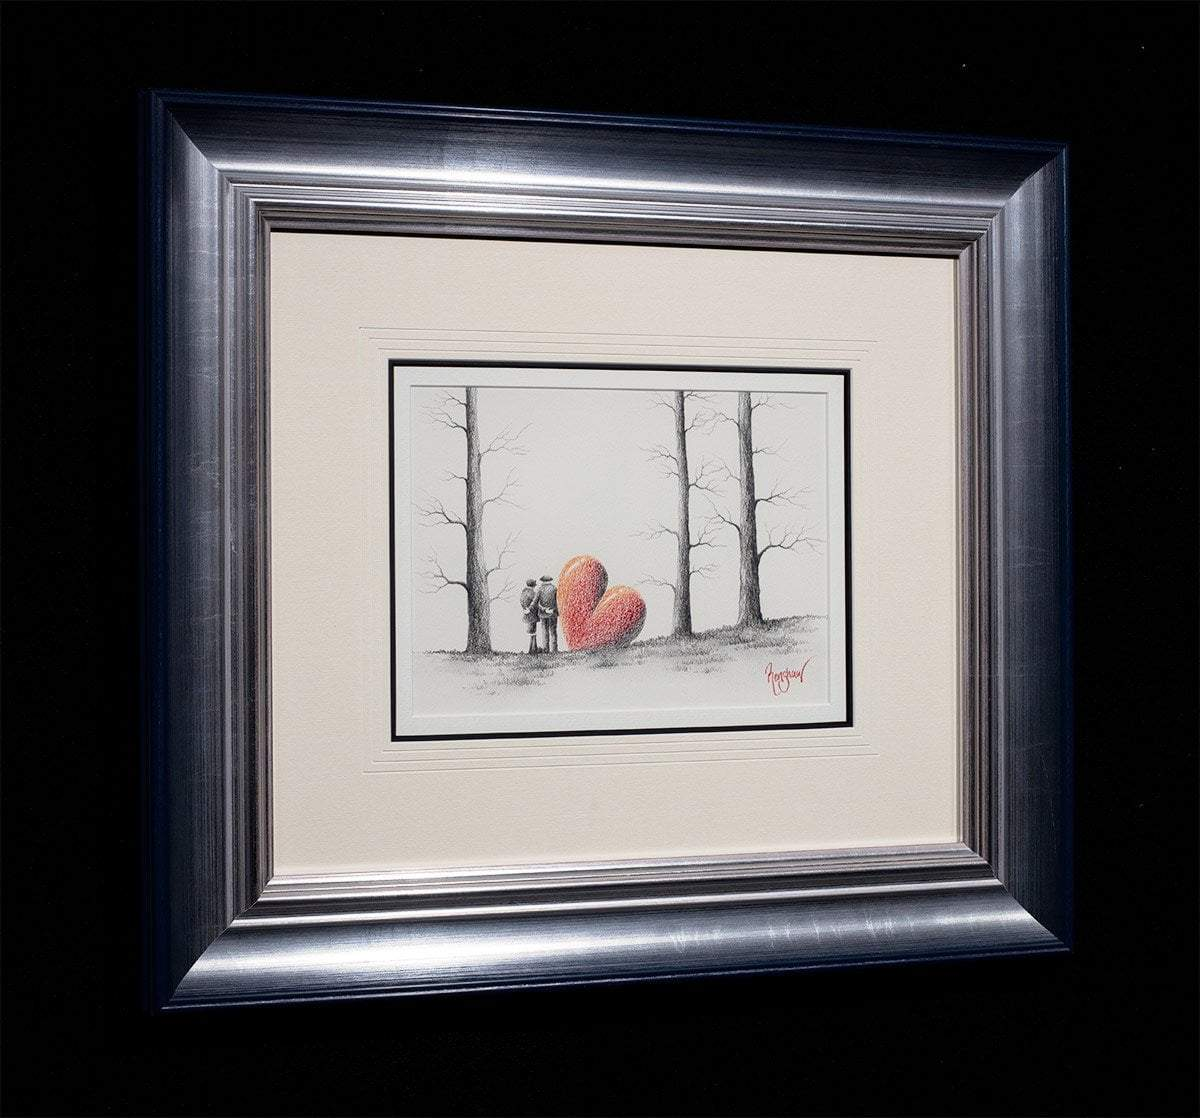 Daydreamers - Original Sketch David Renshaw Framed